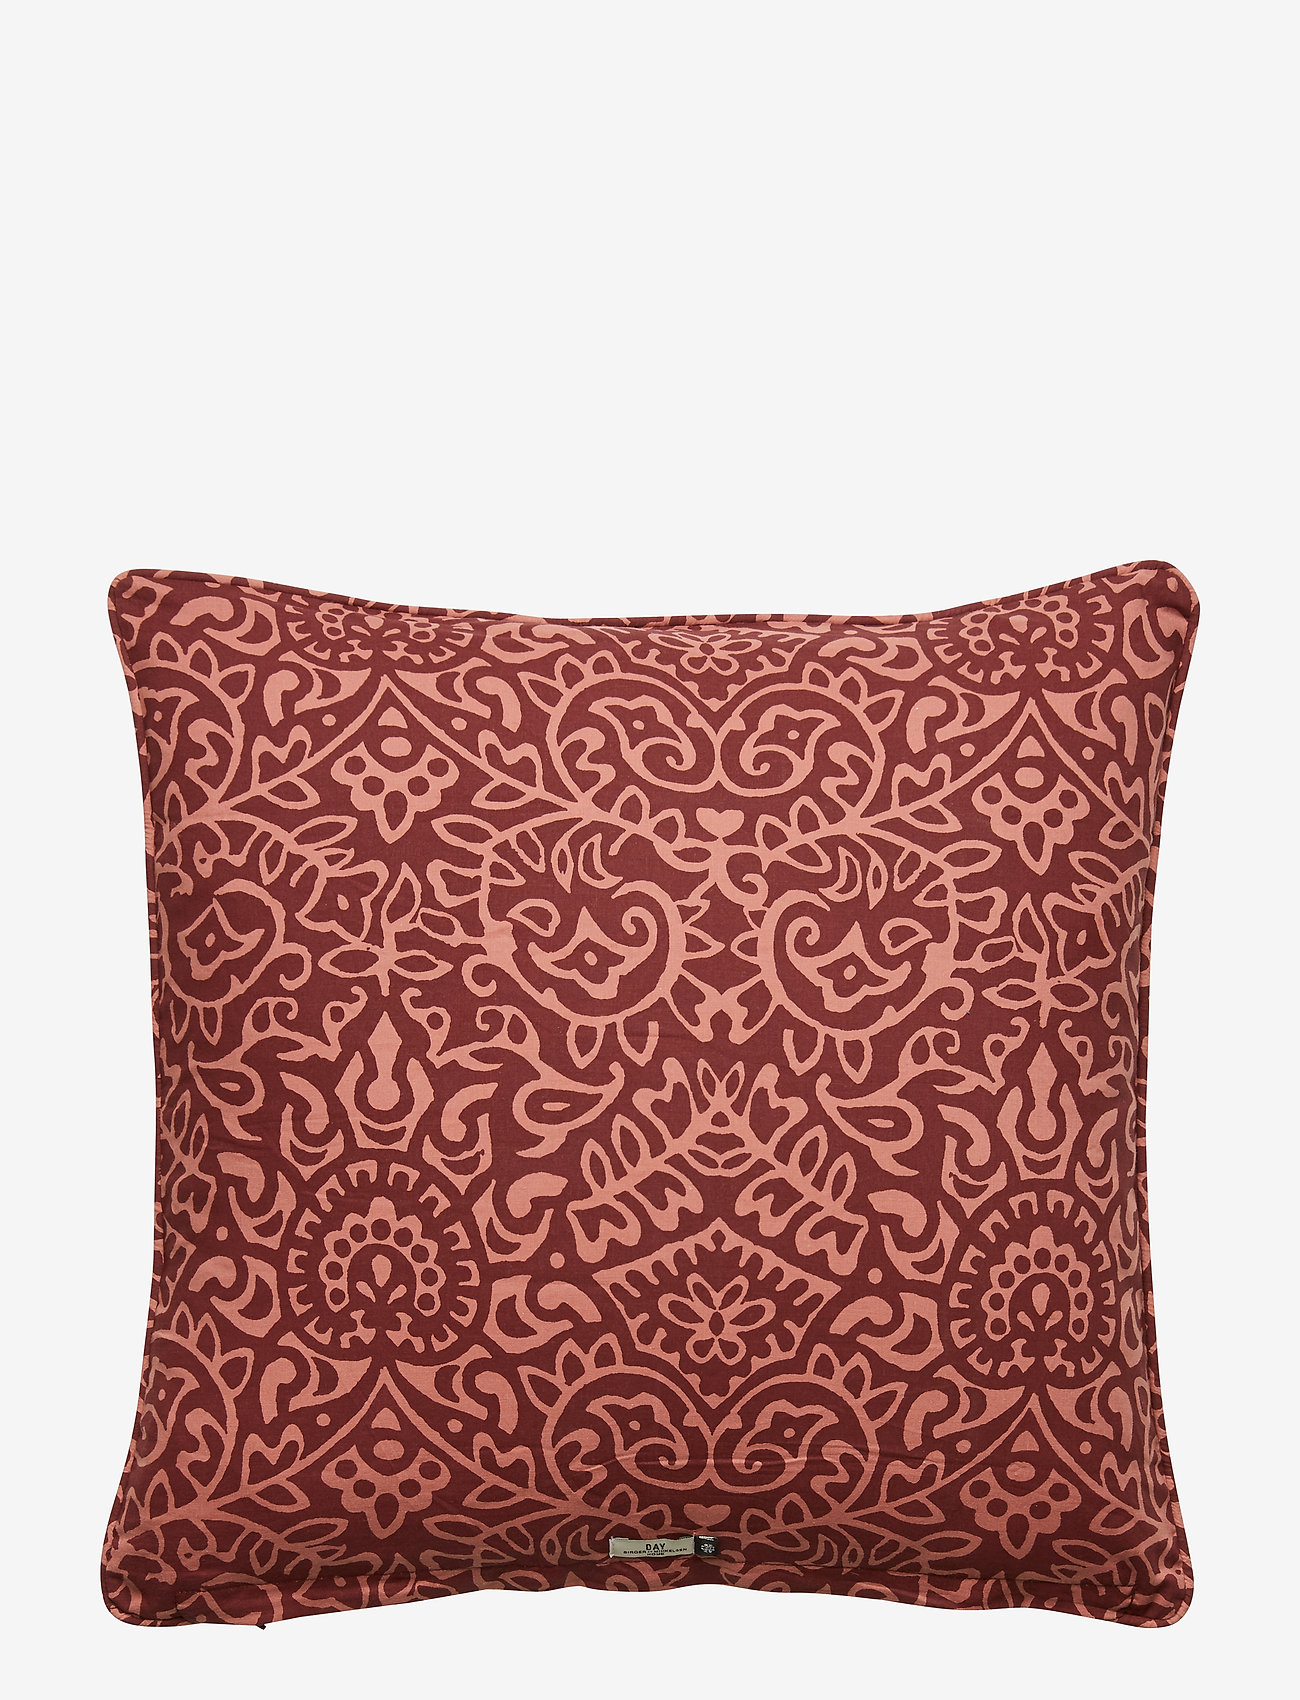 DAY Home  Day Hippie Cushion Cover - Wohnzimmer